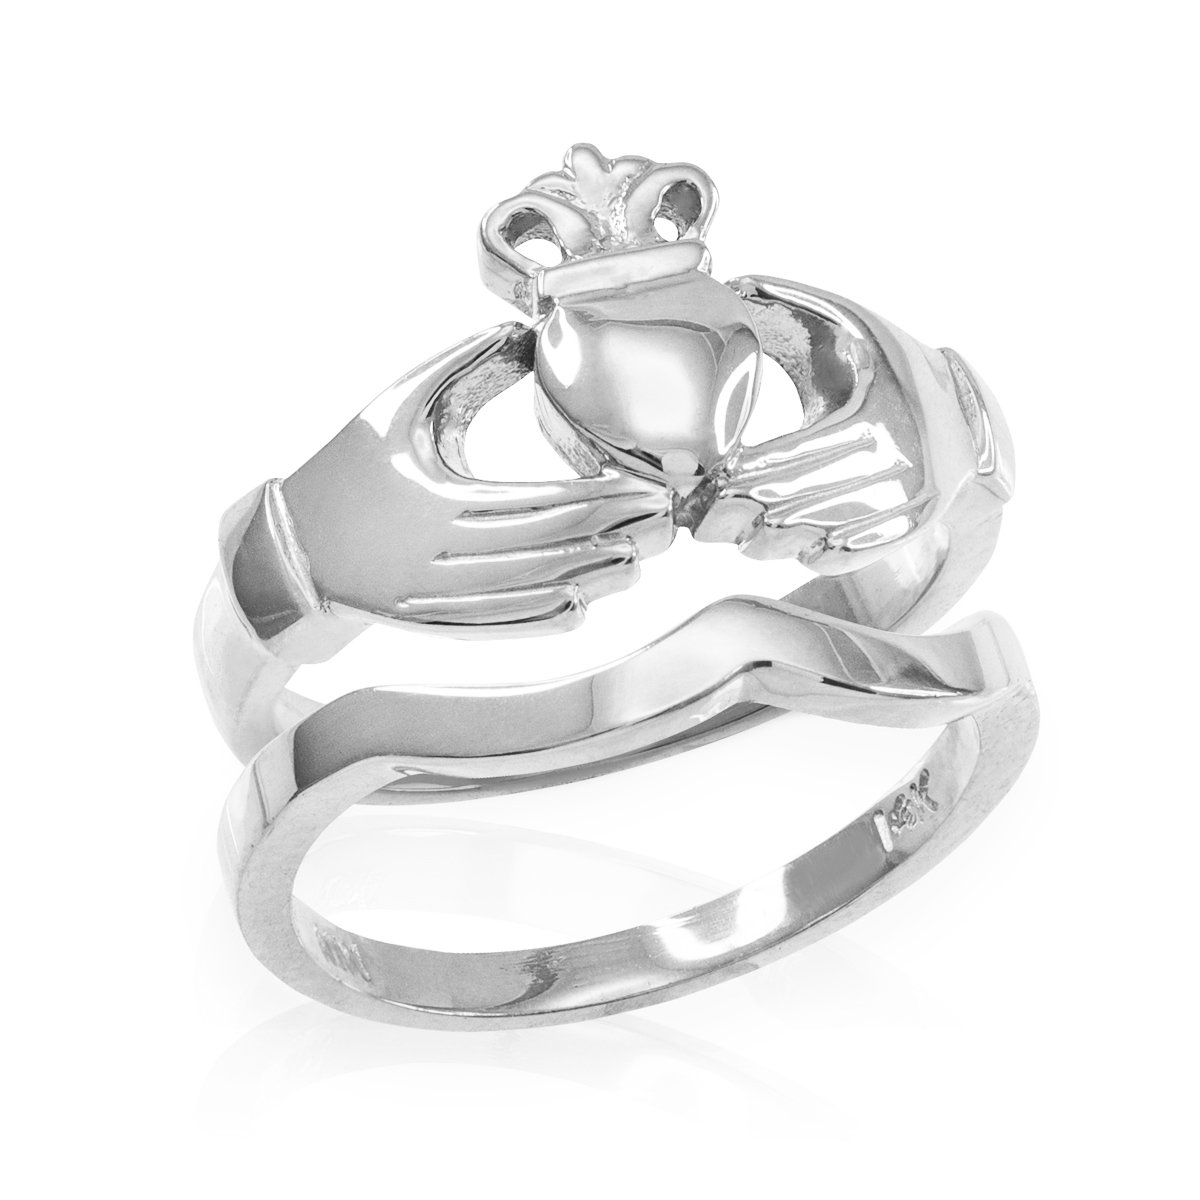 Solid 925 Sterling Silver Two-Piece Claddagh Engagement and Wedding Ring Set (Size 7)